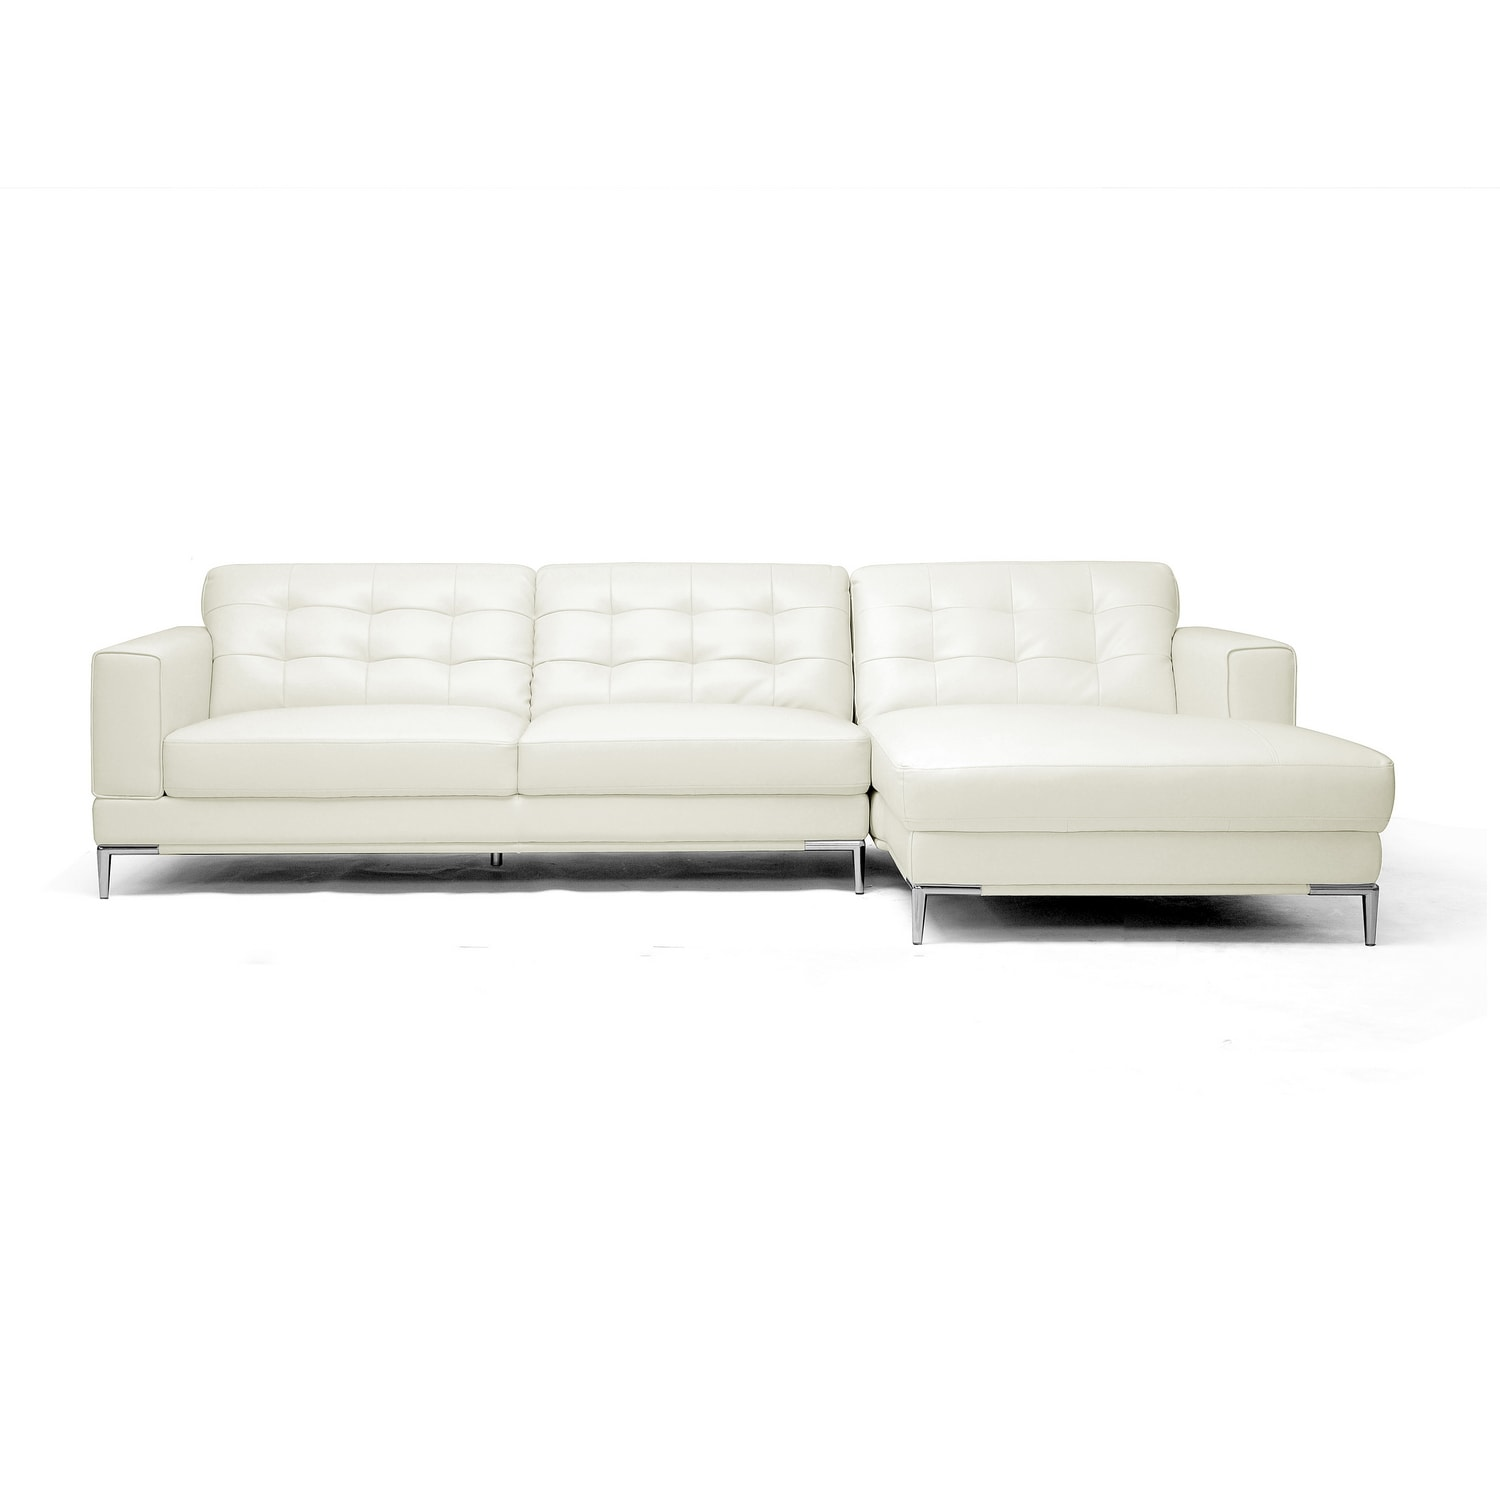 Babbitt Sleek Ivory Leather Modern Sectional Sofa Free Shipping